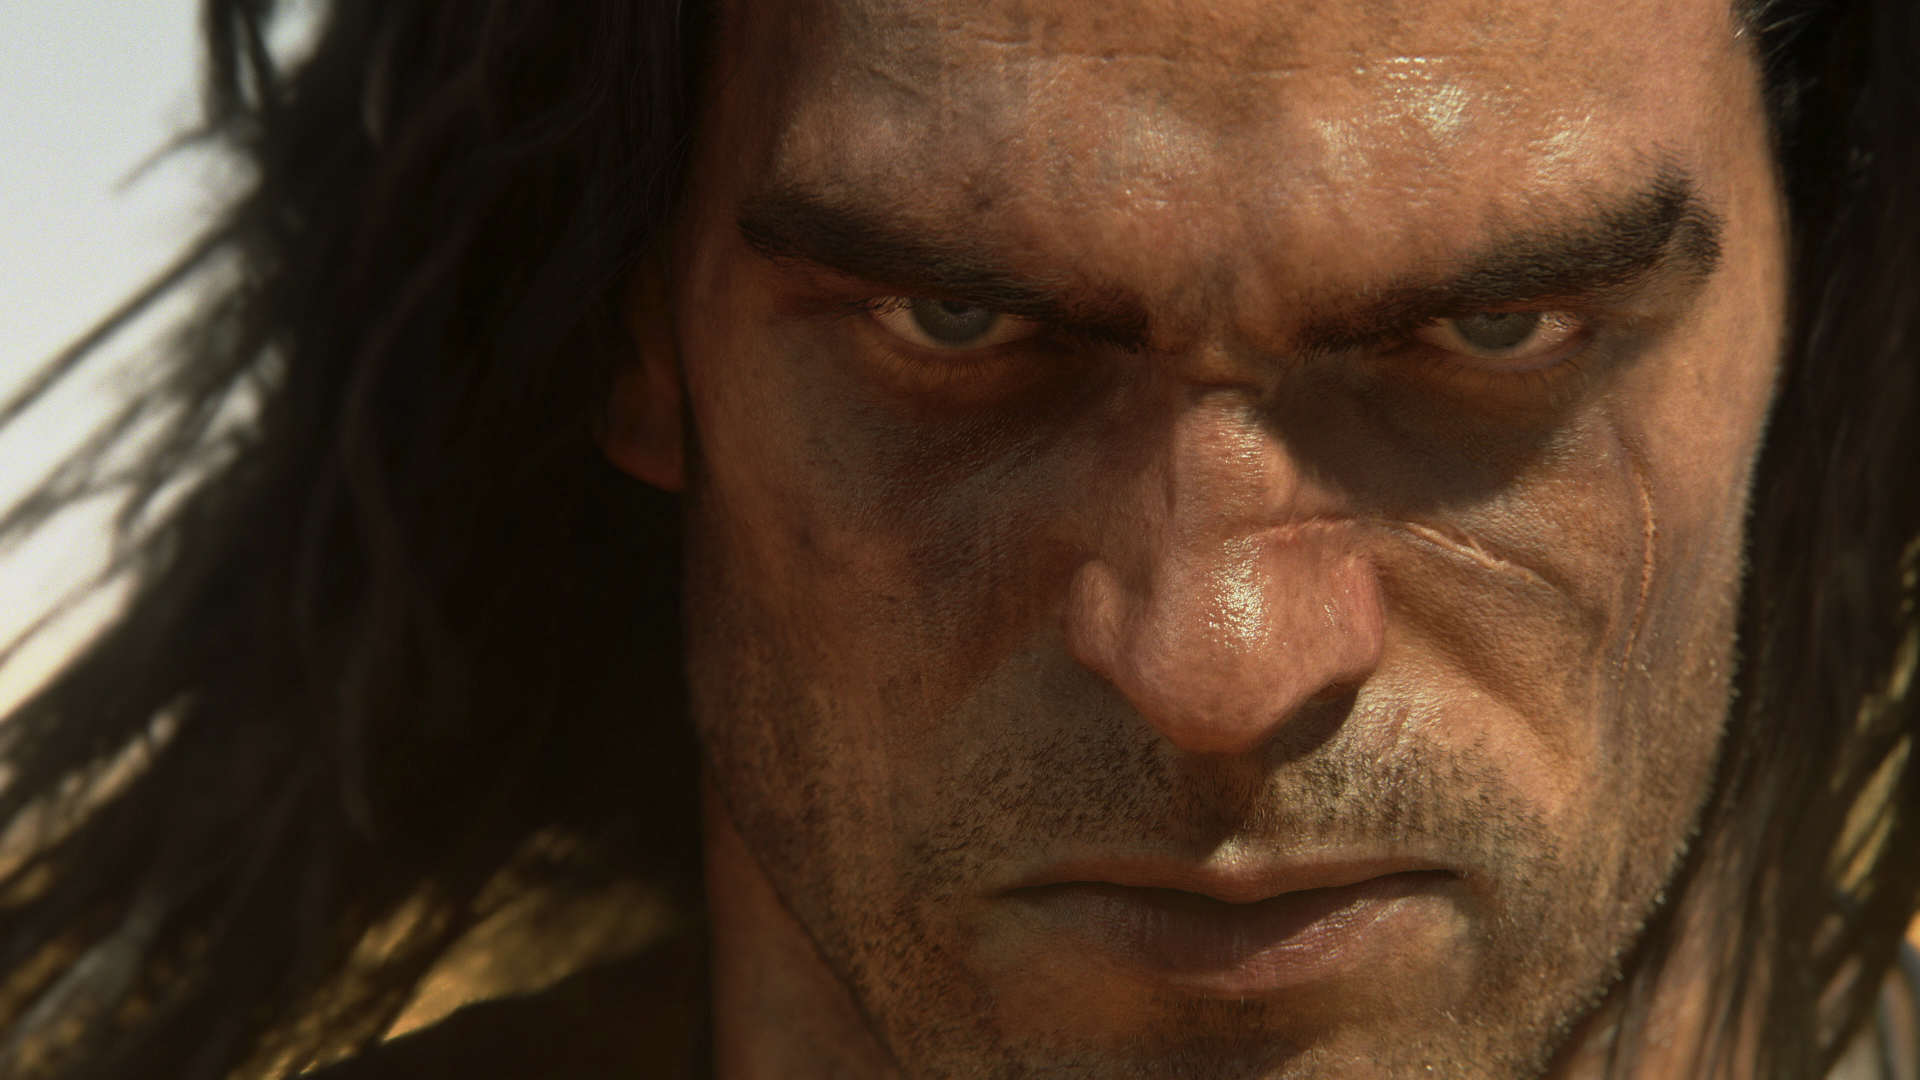 First Conan Exiles Gameplay Footage Is Brilliantly Brutal c152f3 dfedd2e927aa4d589234d4c316e0831f